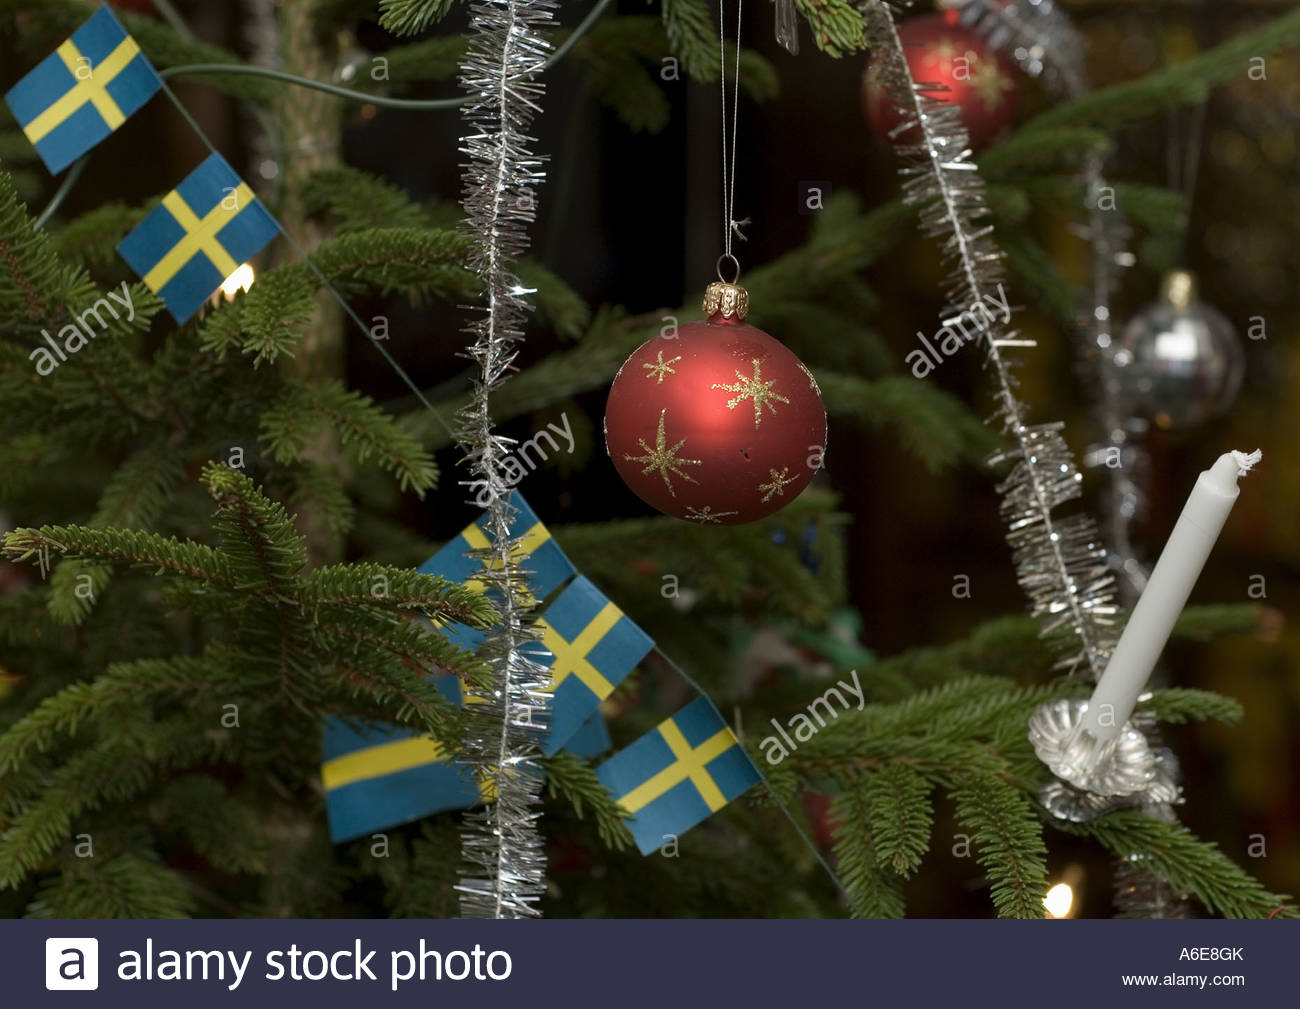 A Christmas Tree Decorated With Swedish Flags Stock Photo